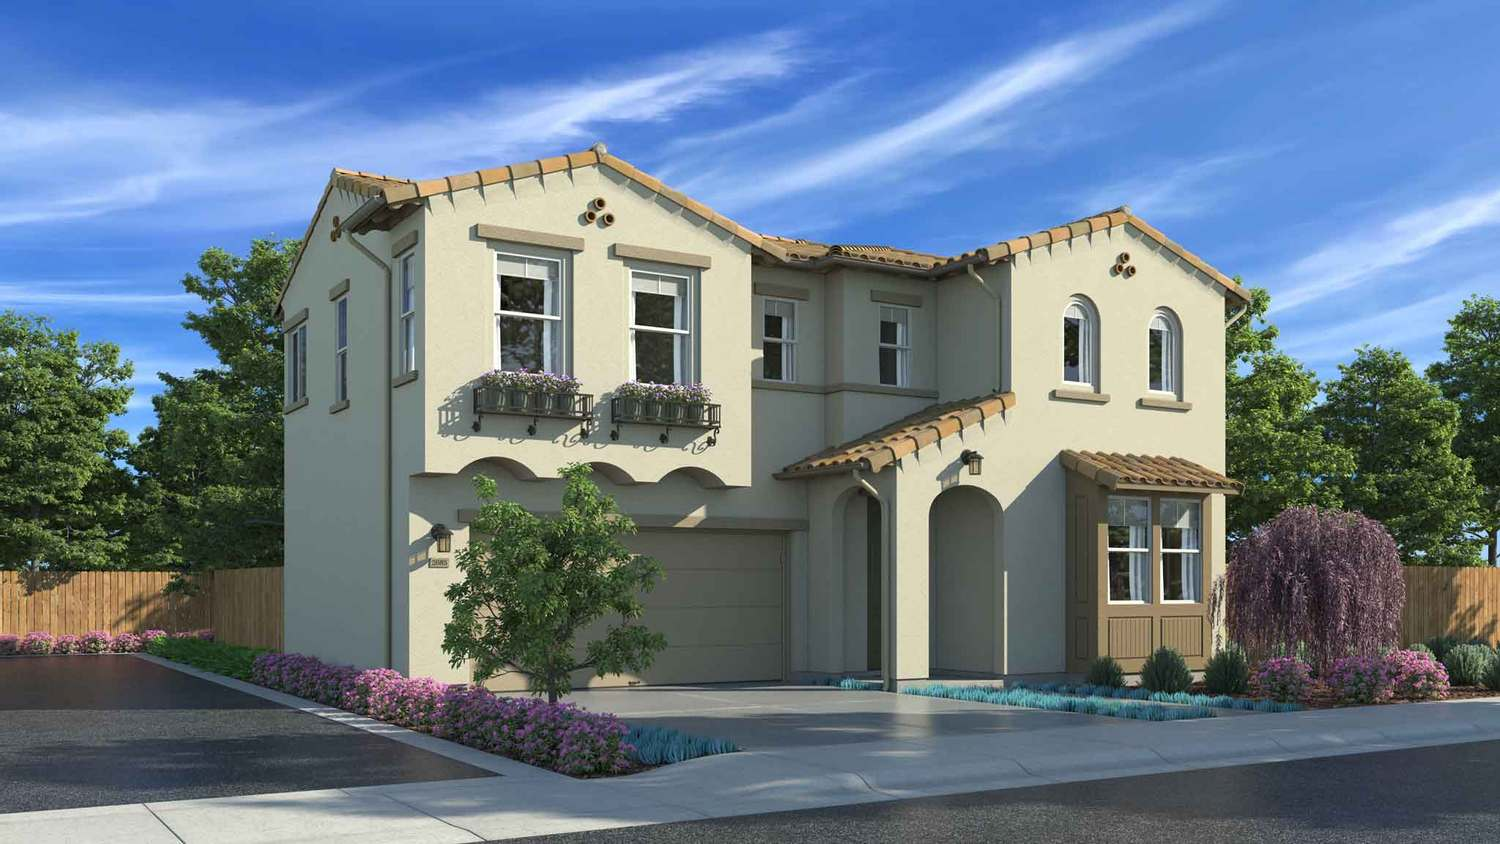 Single Family for Sale at The Gardens - Residence 6 1850 S. Biscayne St. Santa Maria, California 93458 United States